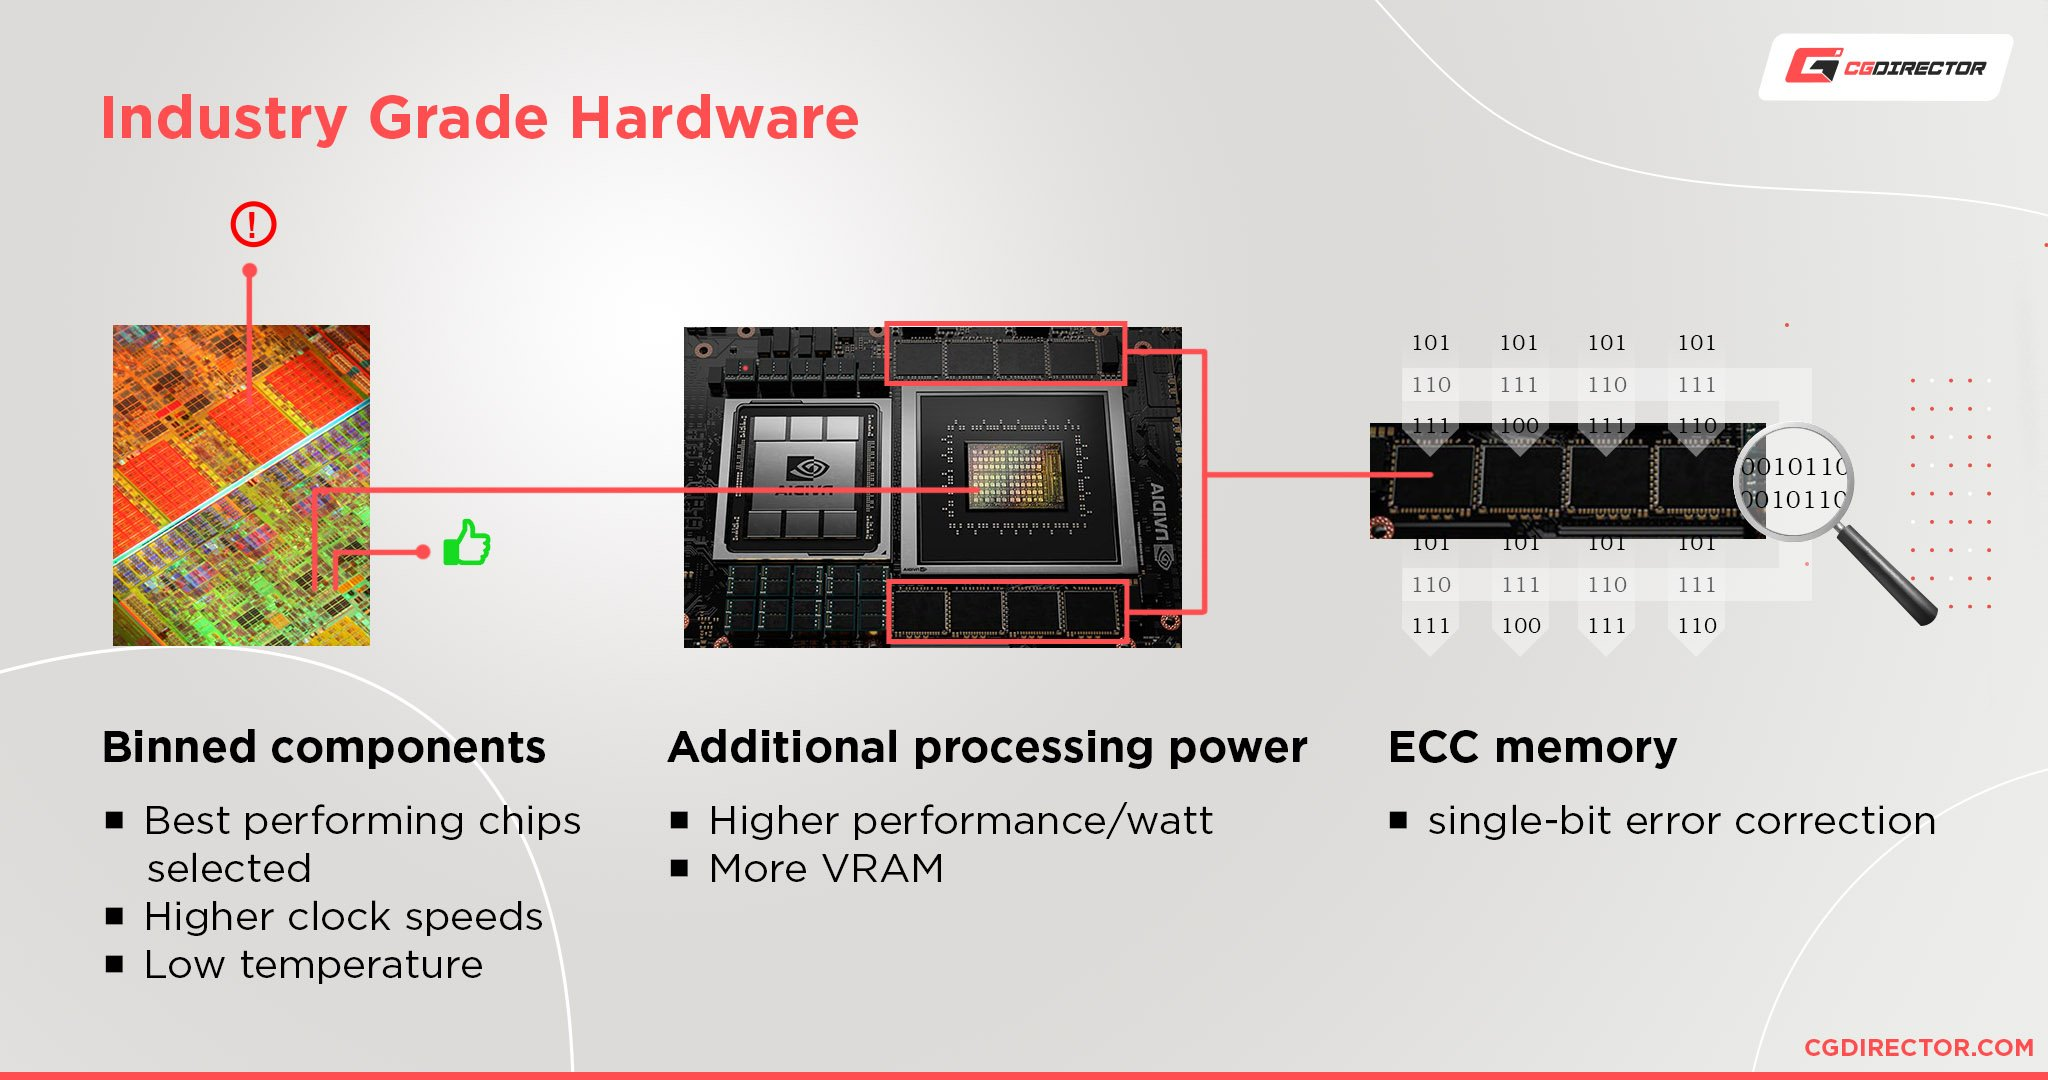 Key features of Industry-grade Hardware